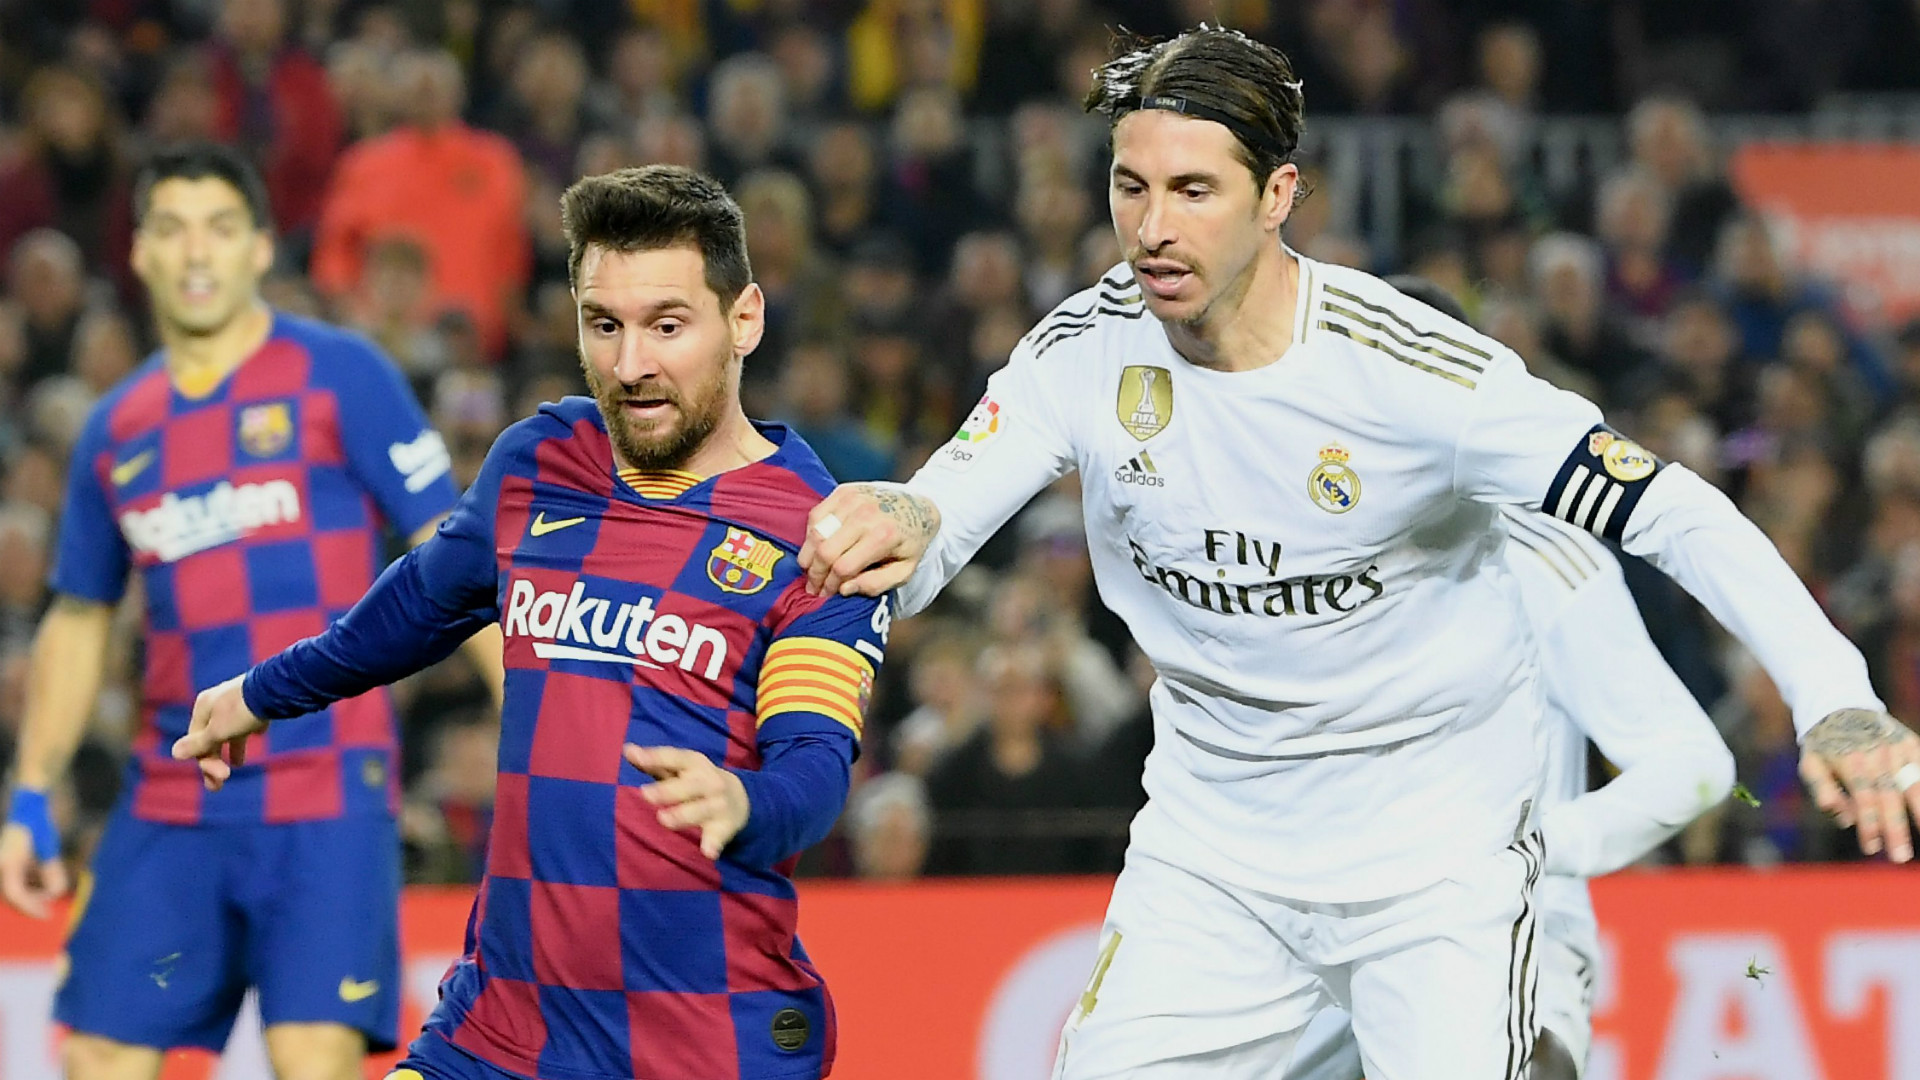 'El Clasico is a game unlike any other' - Beating Barcelona brings 'great joy', admits Ramos